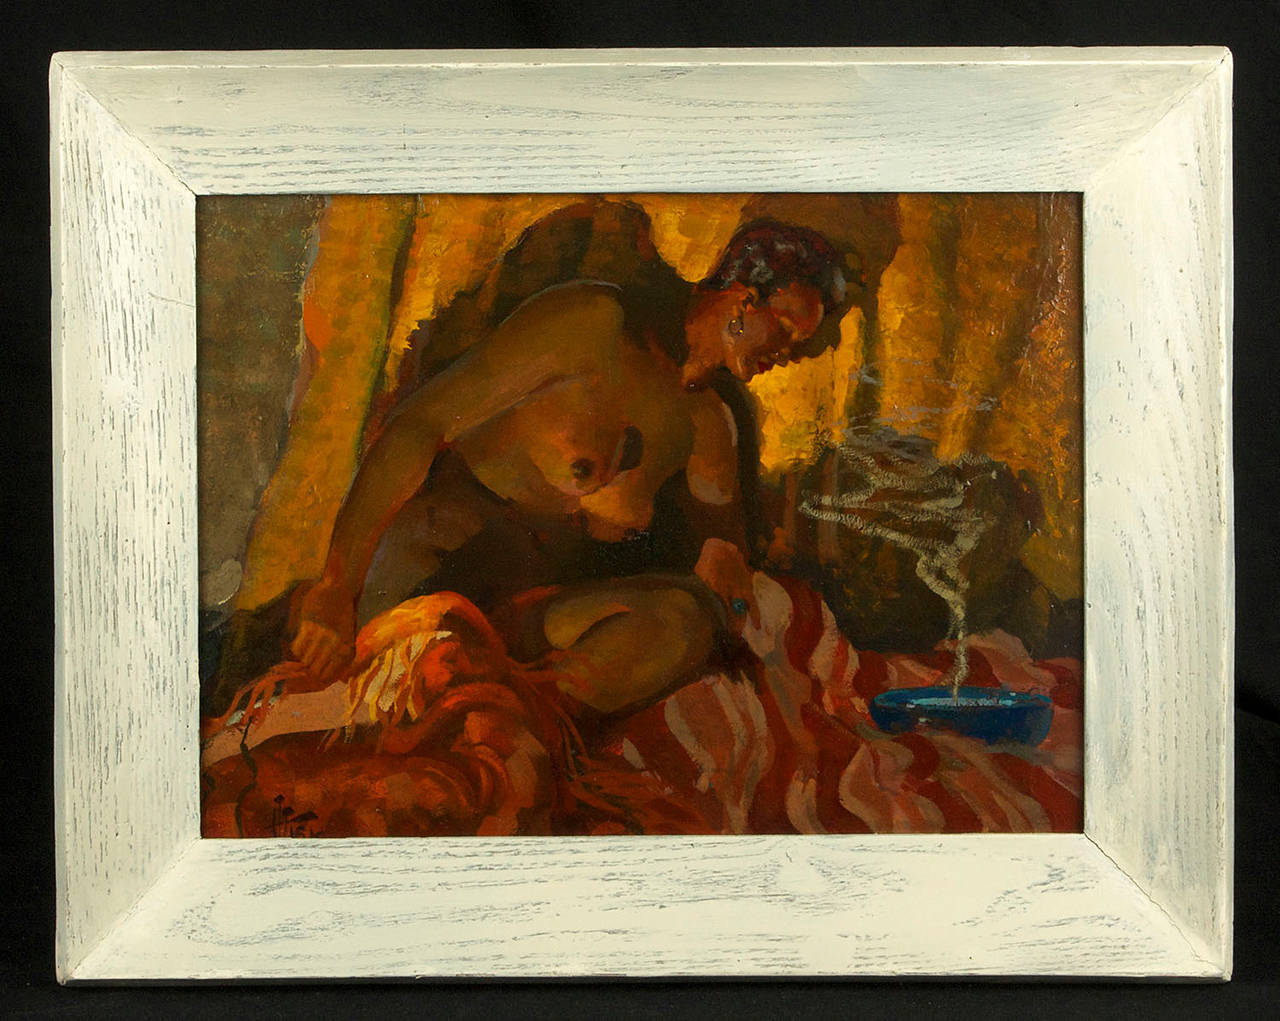 Nude Contemplation - Painting by Harry T. Fisk